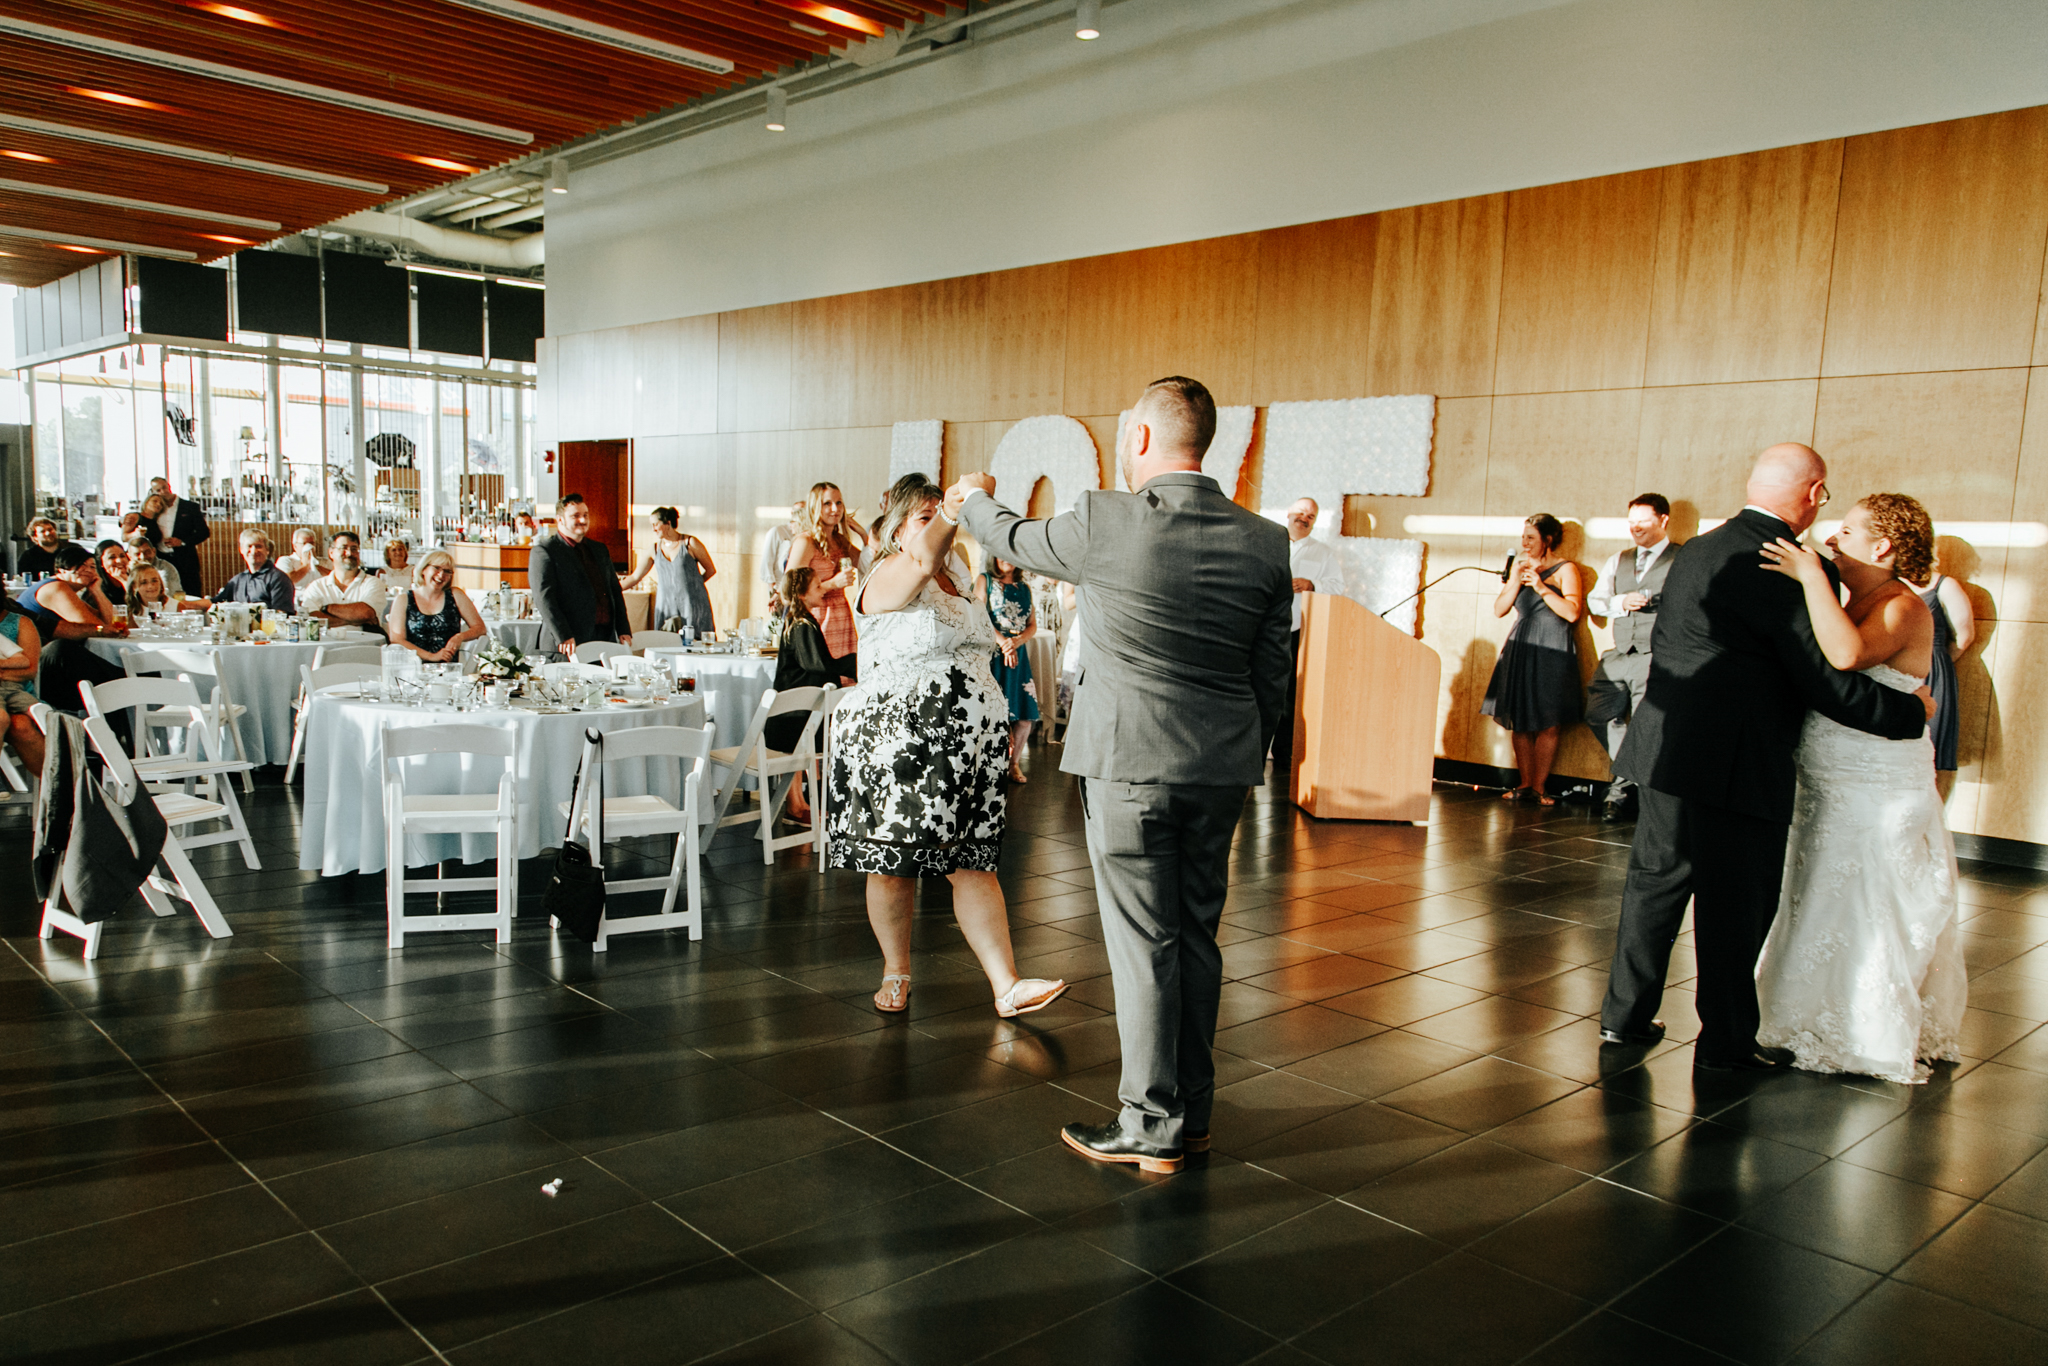 lethbridge-wedding-photographer-love-and-be-loved-photography-trent-danielle-galt-reception-picture-image-photo-208.jpg